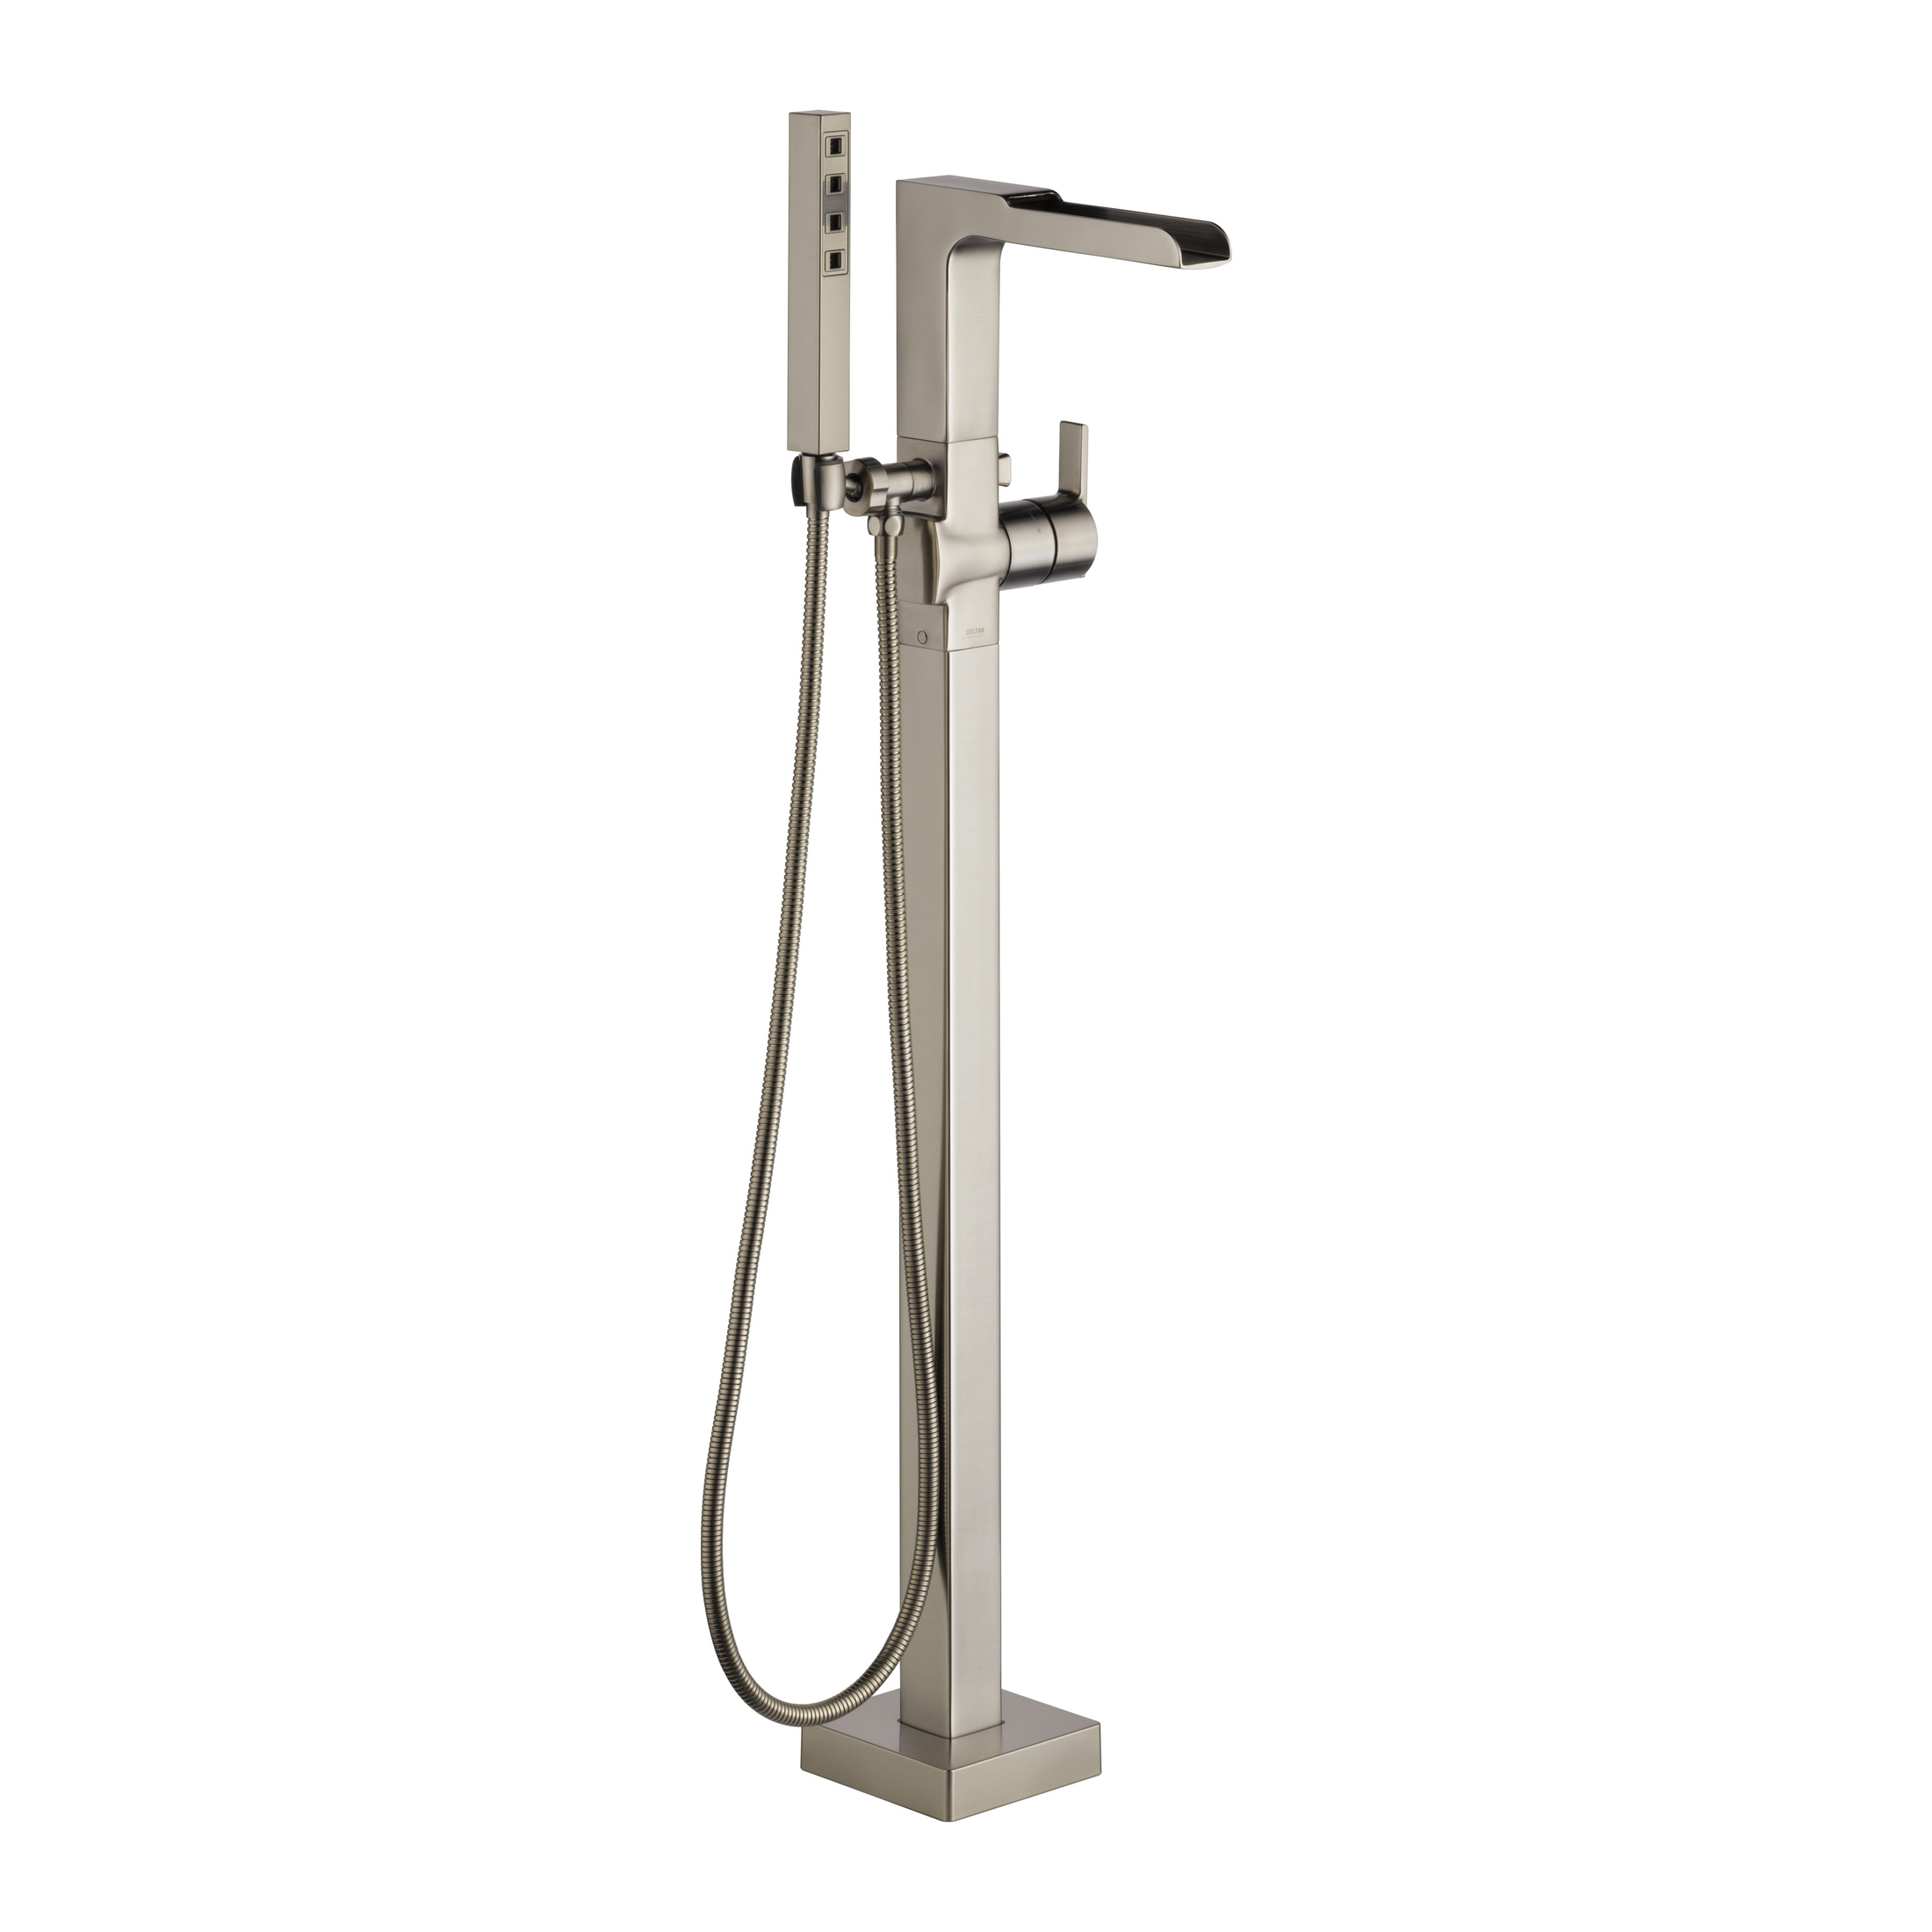 DELTA® T4768-SSFL Ara® Tub Filler, 2 gpm, Brilliance® Stainless Steel, 1 Handles, Hand Shower Yes/No: Yes, Domestic, Commercial